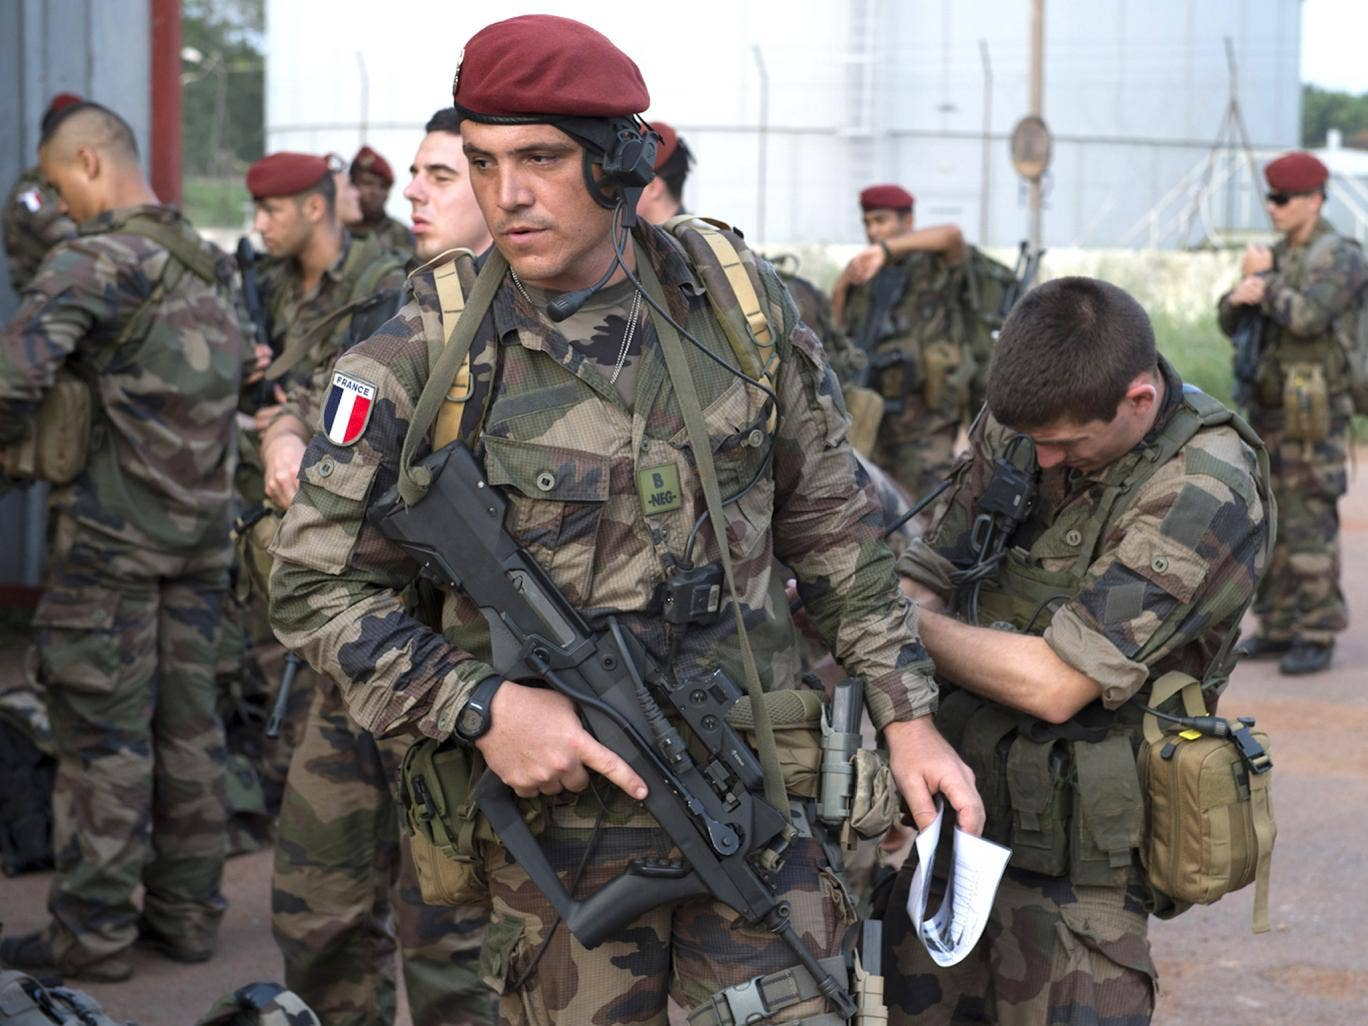 There are 400 French soldiers already on the ground in the Central African Republic